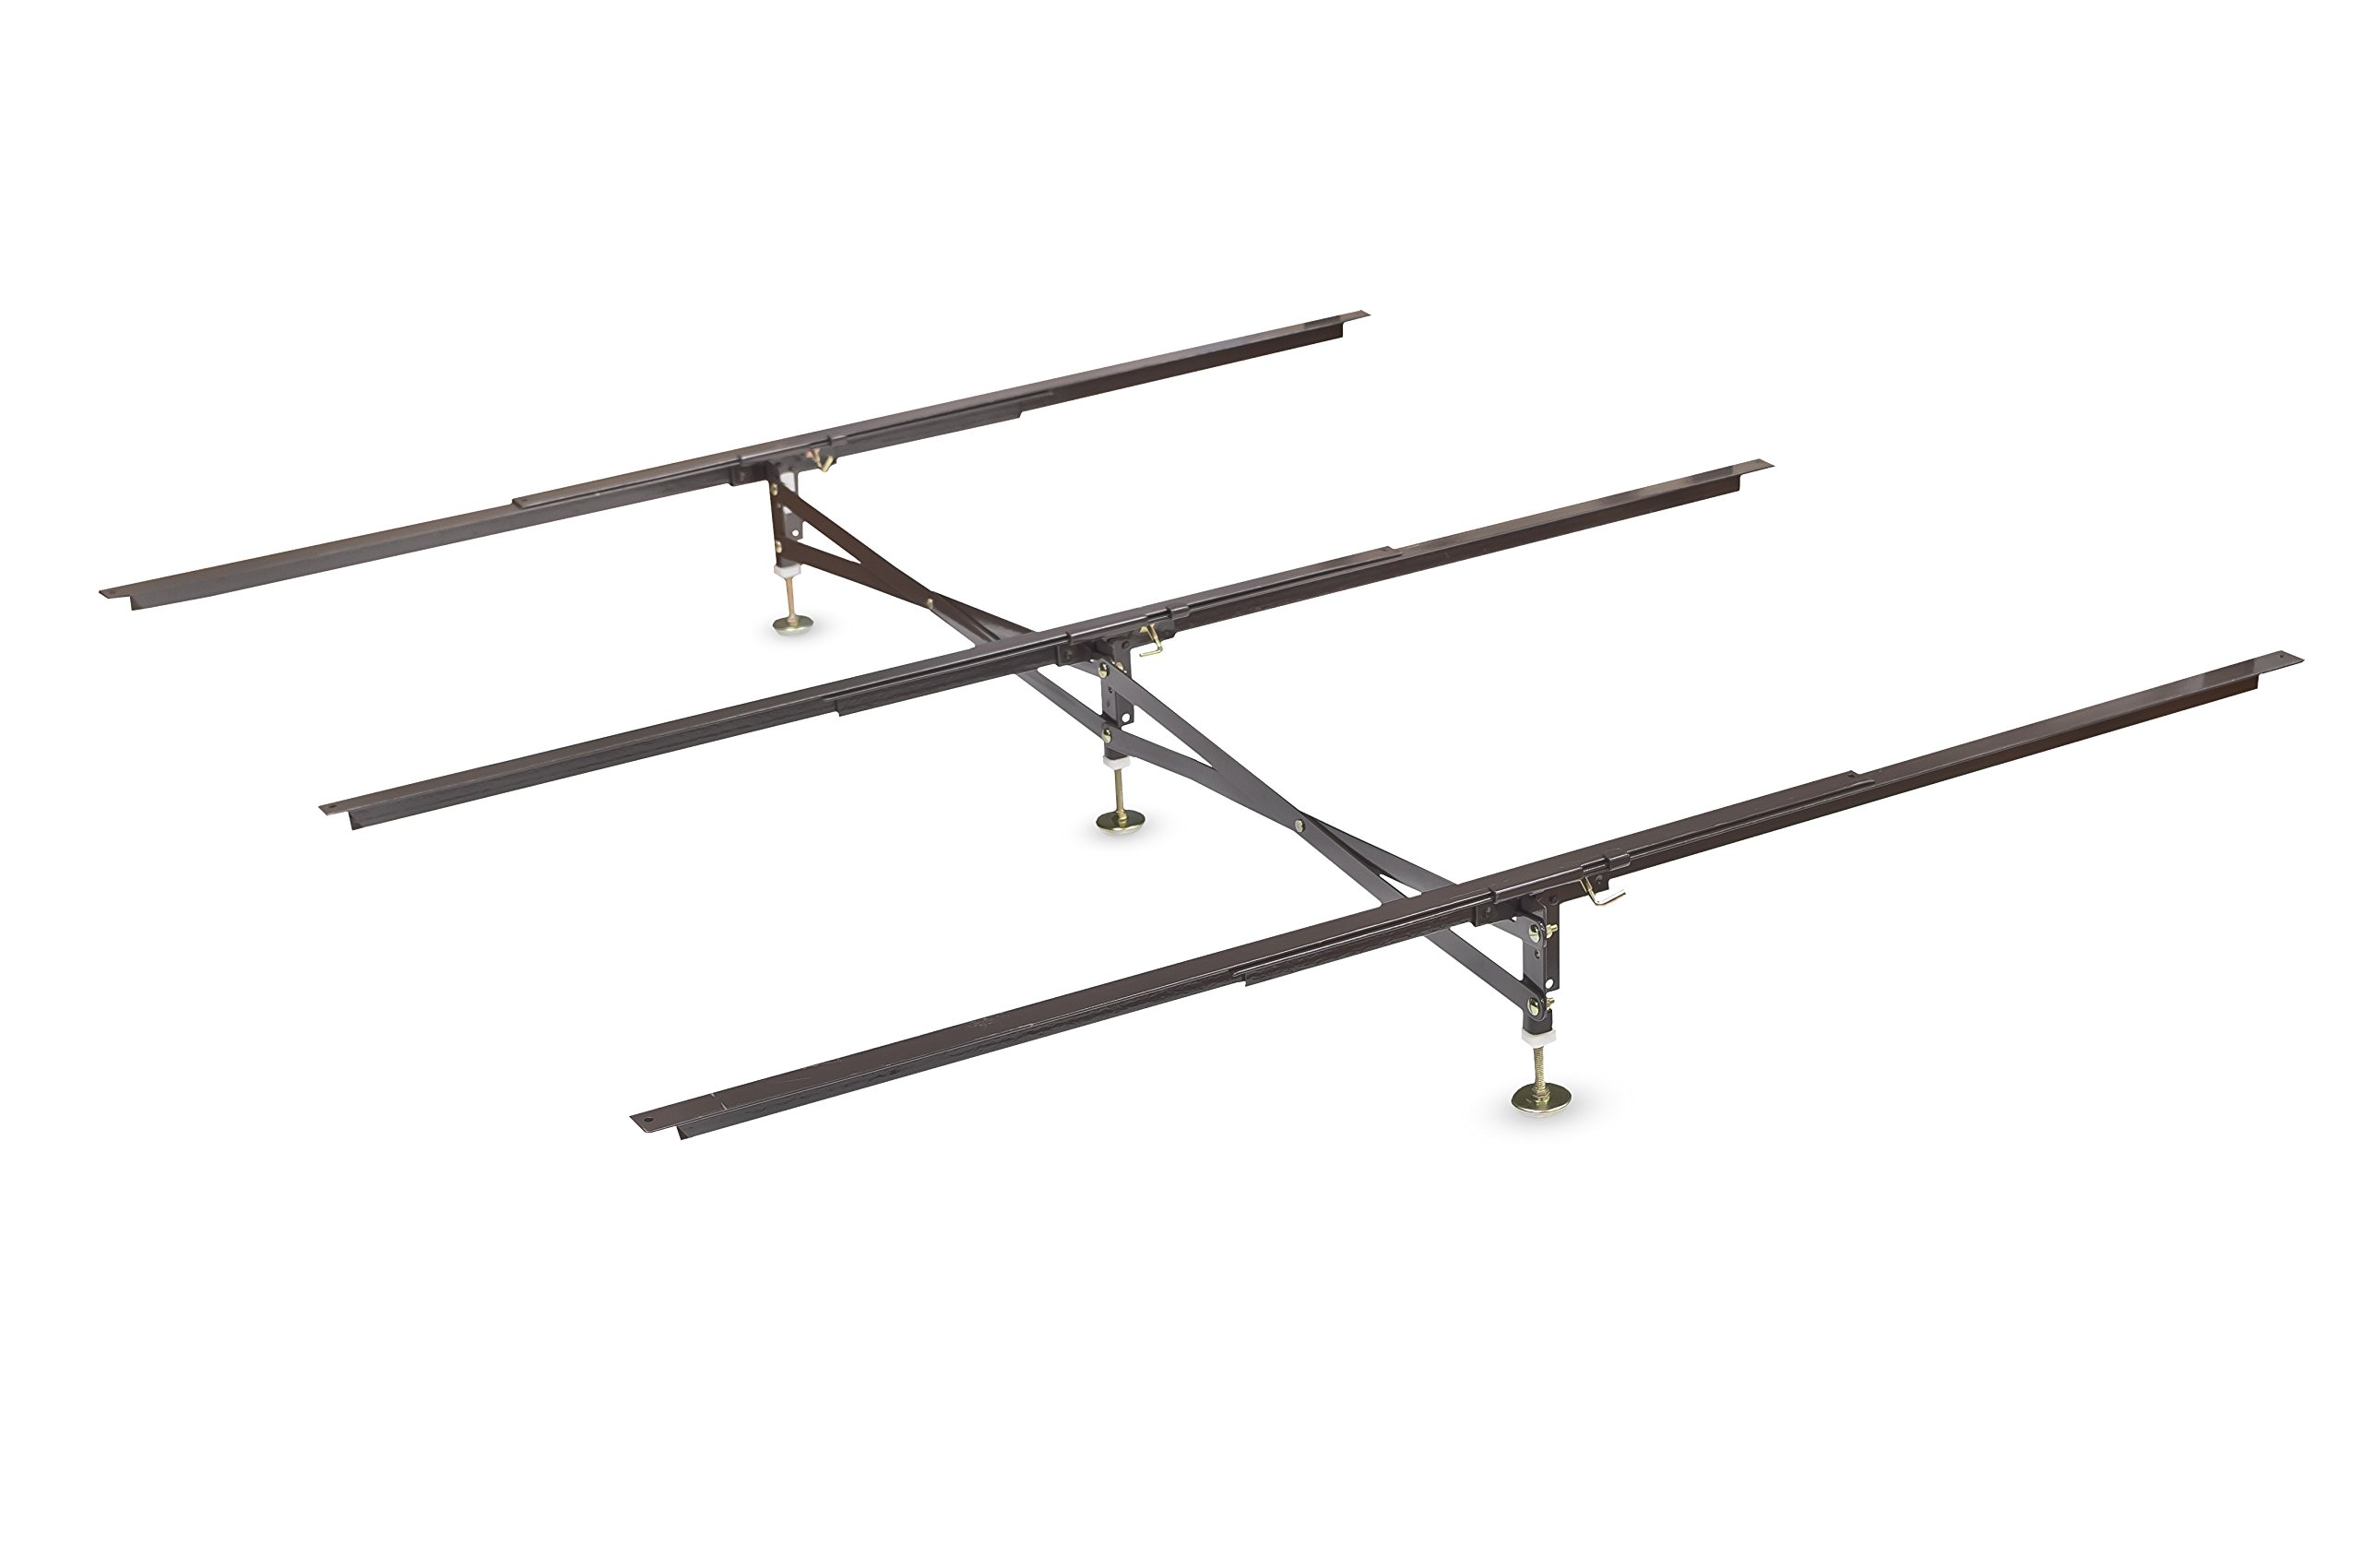 Glideaway X-Support Bed Frame Support System, GS-3 XS Model - 3 Cross Rails and 3 Legs - Strong Center Support Base for Full, Queen and King Mattress, Box Springs, and Bed Foundations by Glideaway